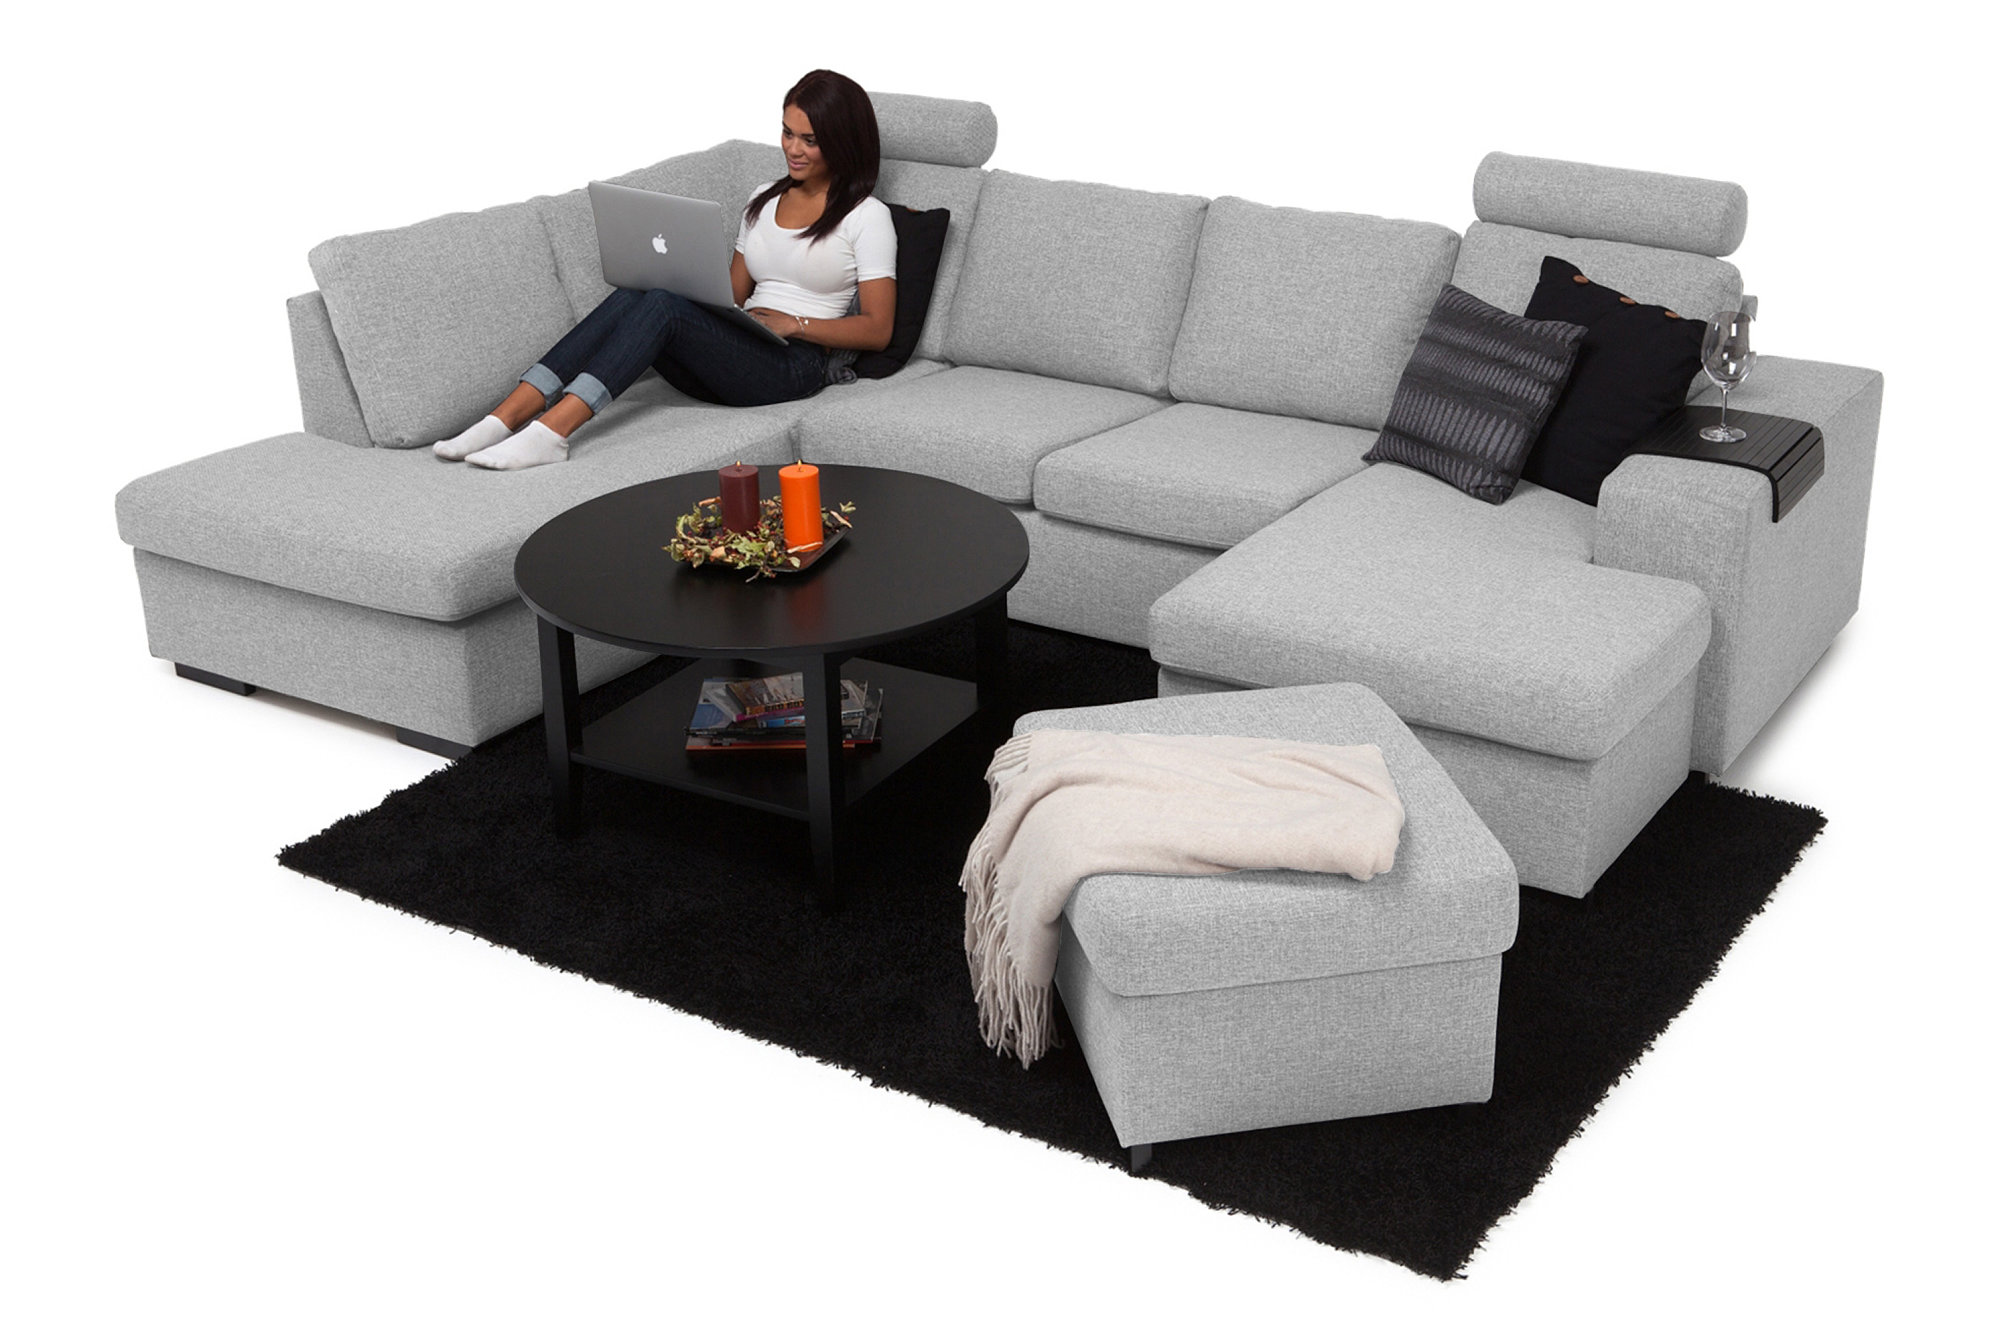 If You Re Looking For A Stylish U Shaped Sectional Couch This Is One